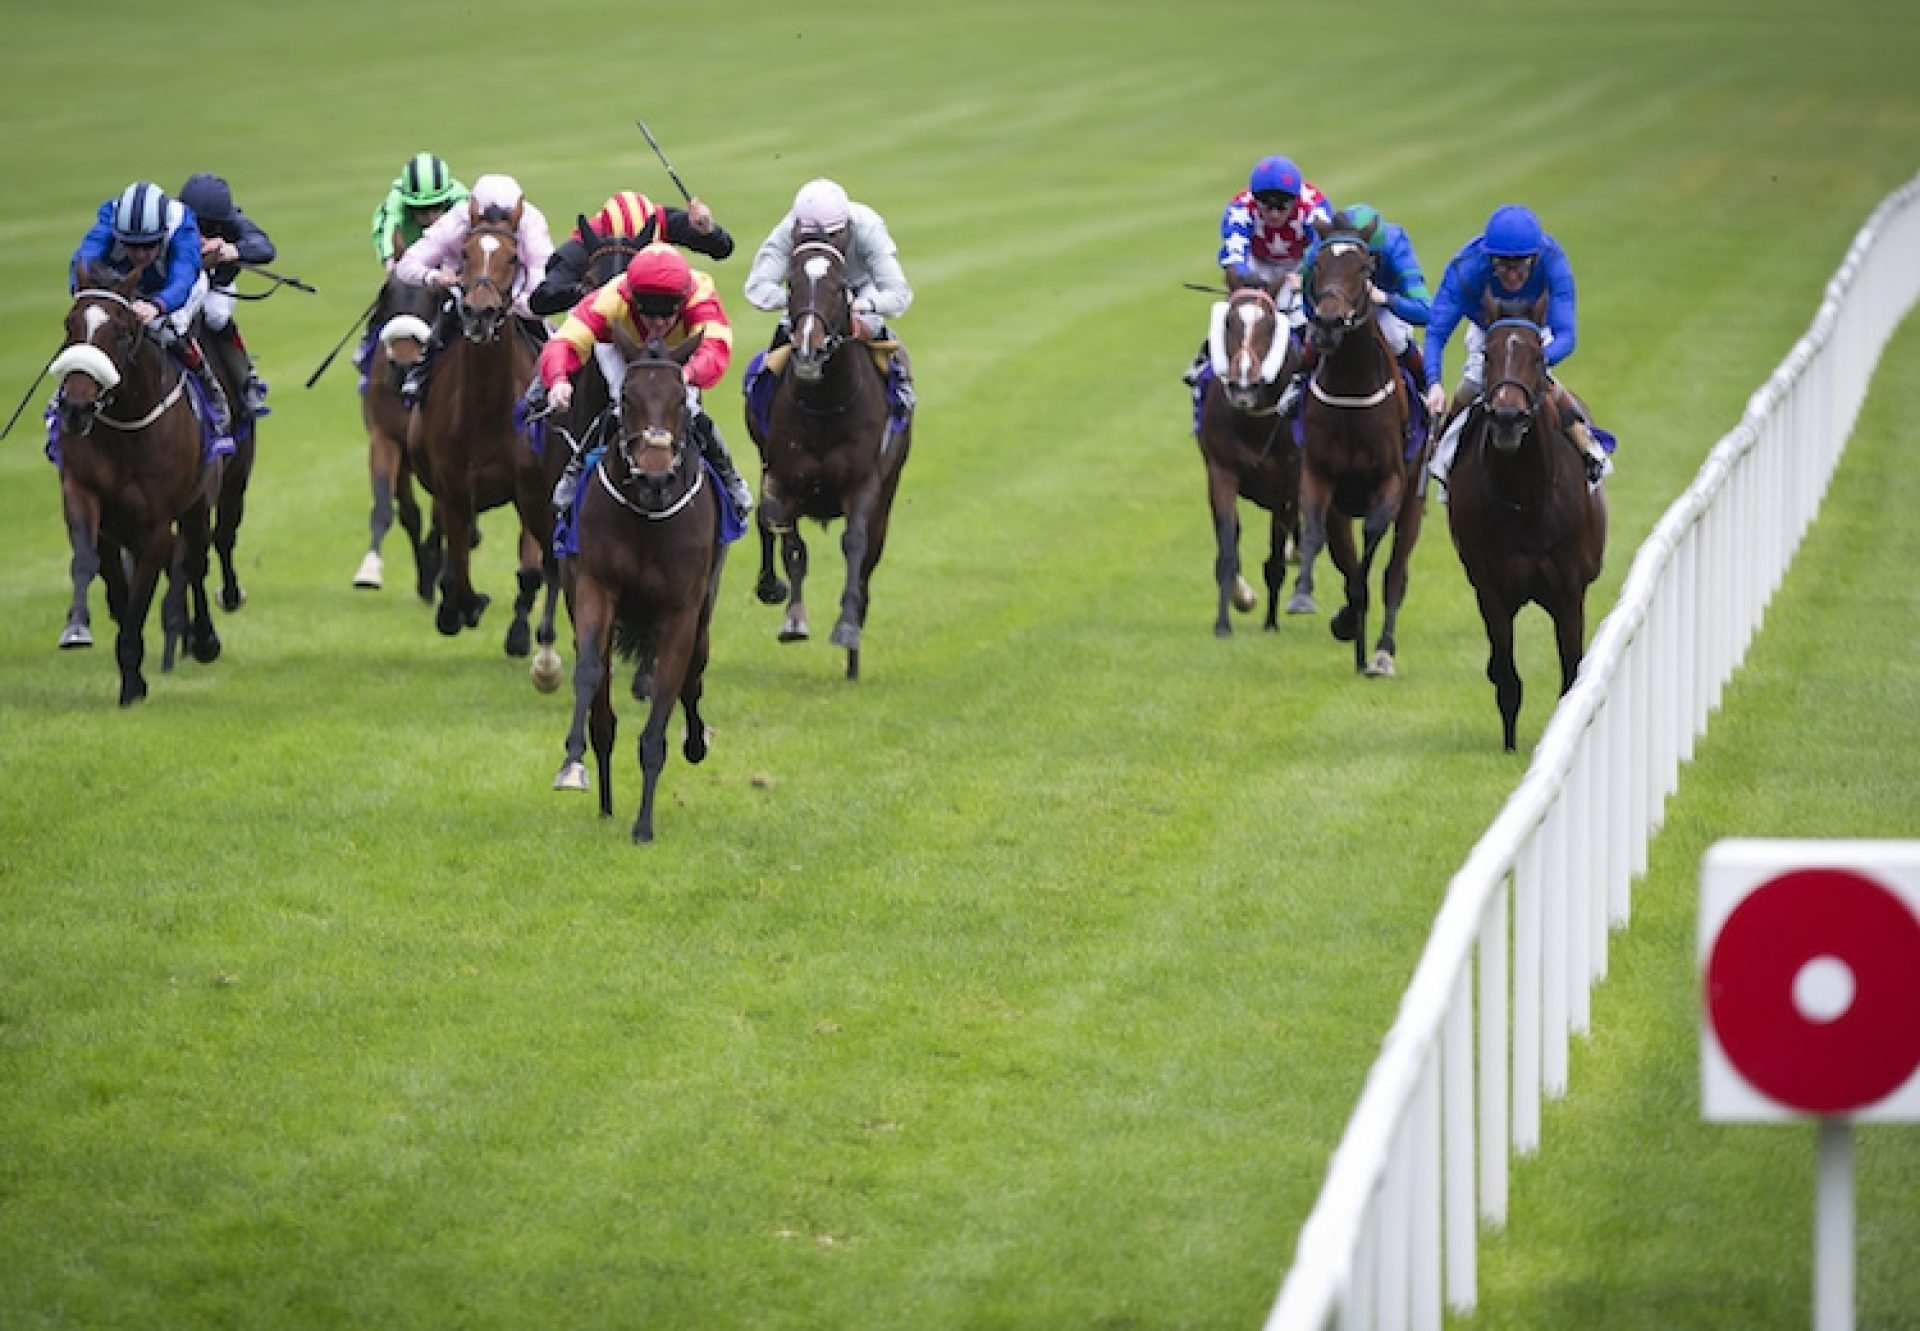 Flying Fairies (Holy Roman Emperor) winning the Listed Trigo Stakes at Leopardstown